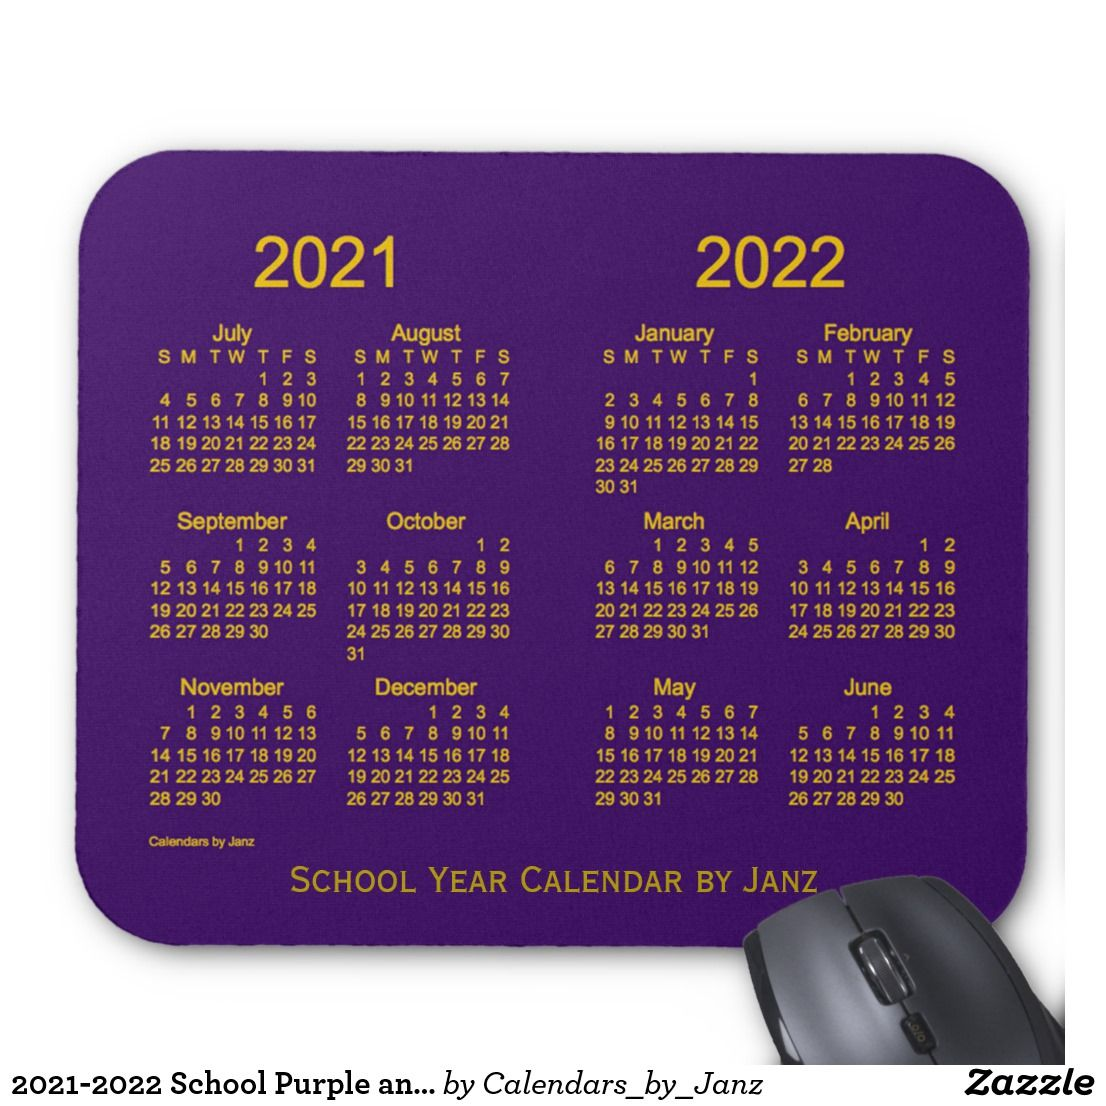 20212022 School Purple and Gold Calendar by Janz Mouse